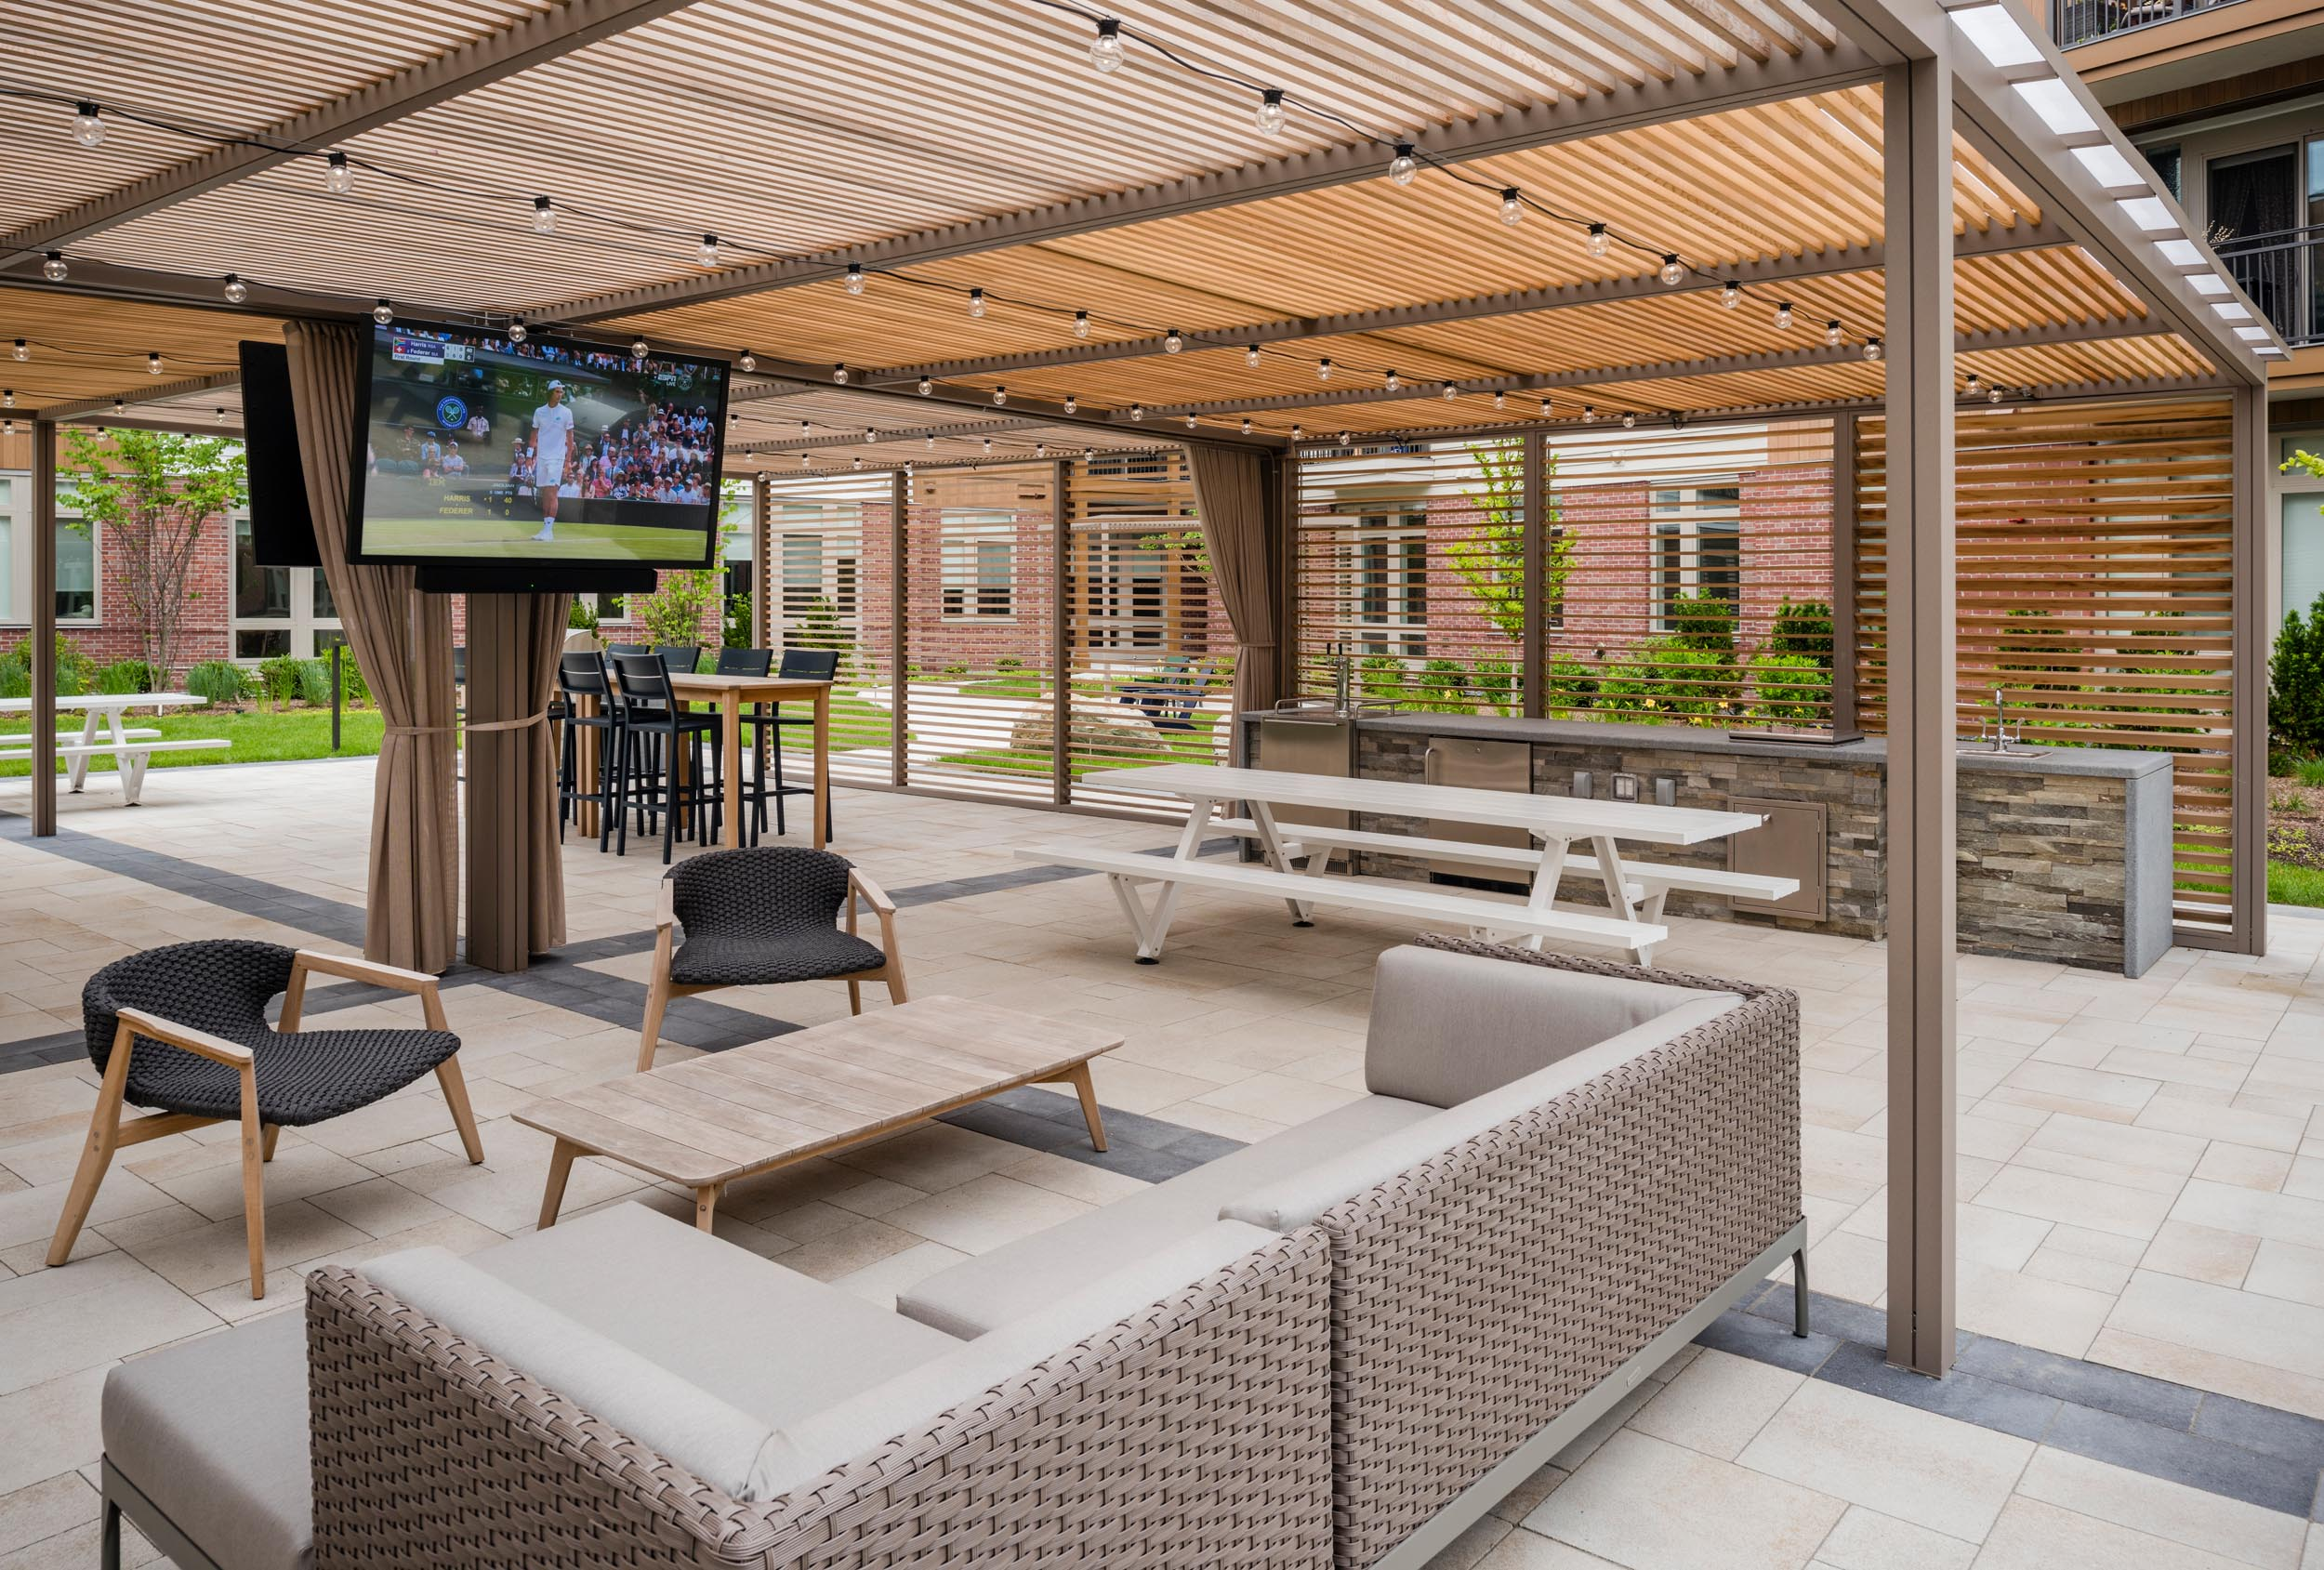 The Kendrick's biergarten, located in an outdoor courtyard and featuring a pergola, seating areas, tables, TVs, and grilling stations